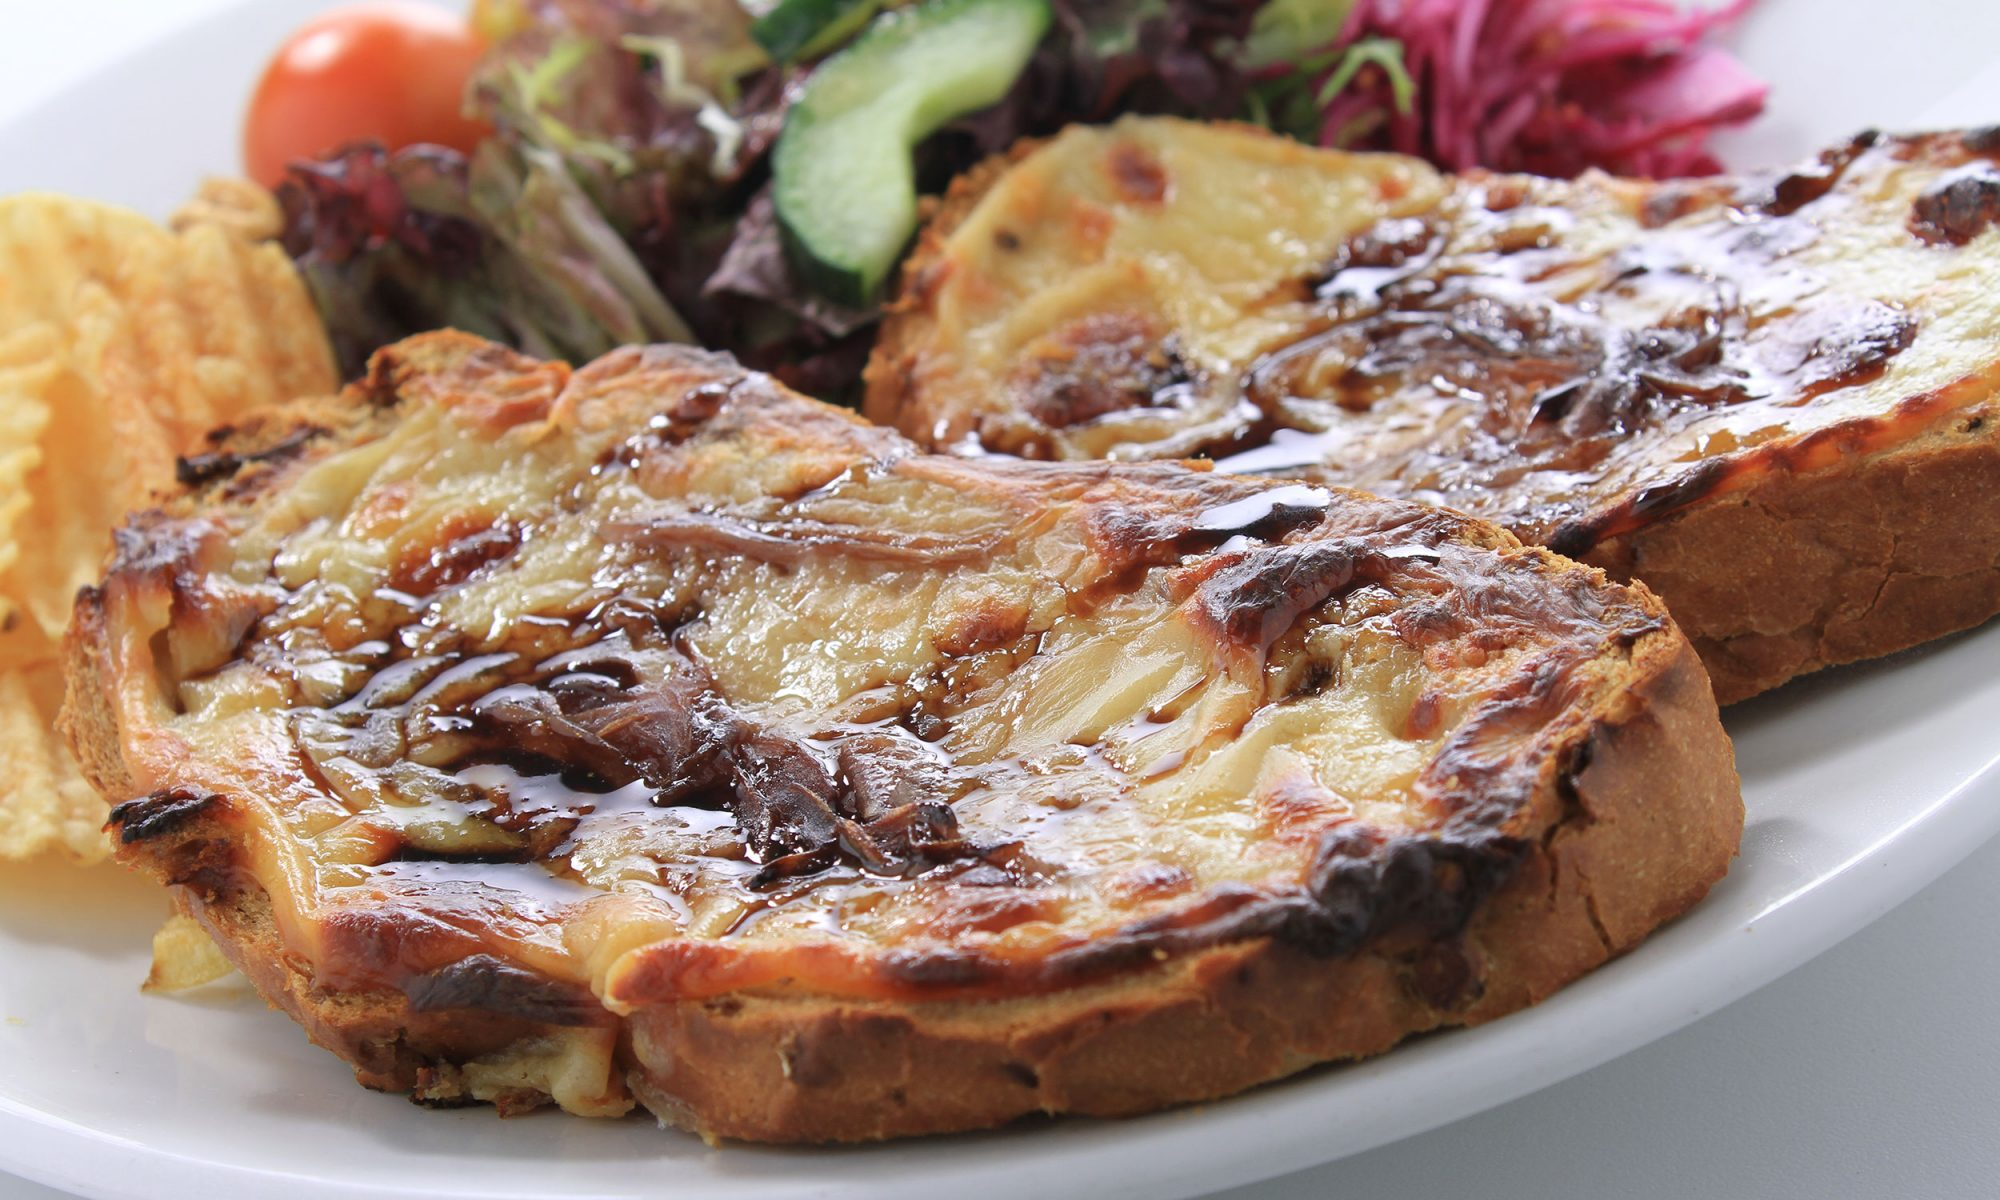 EC: Make Welsh Rarebit for Breakfast Like the Champ You Are